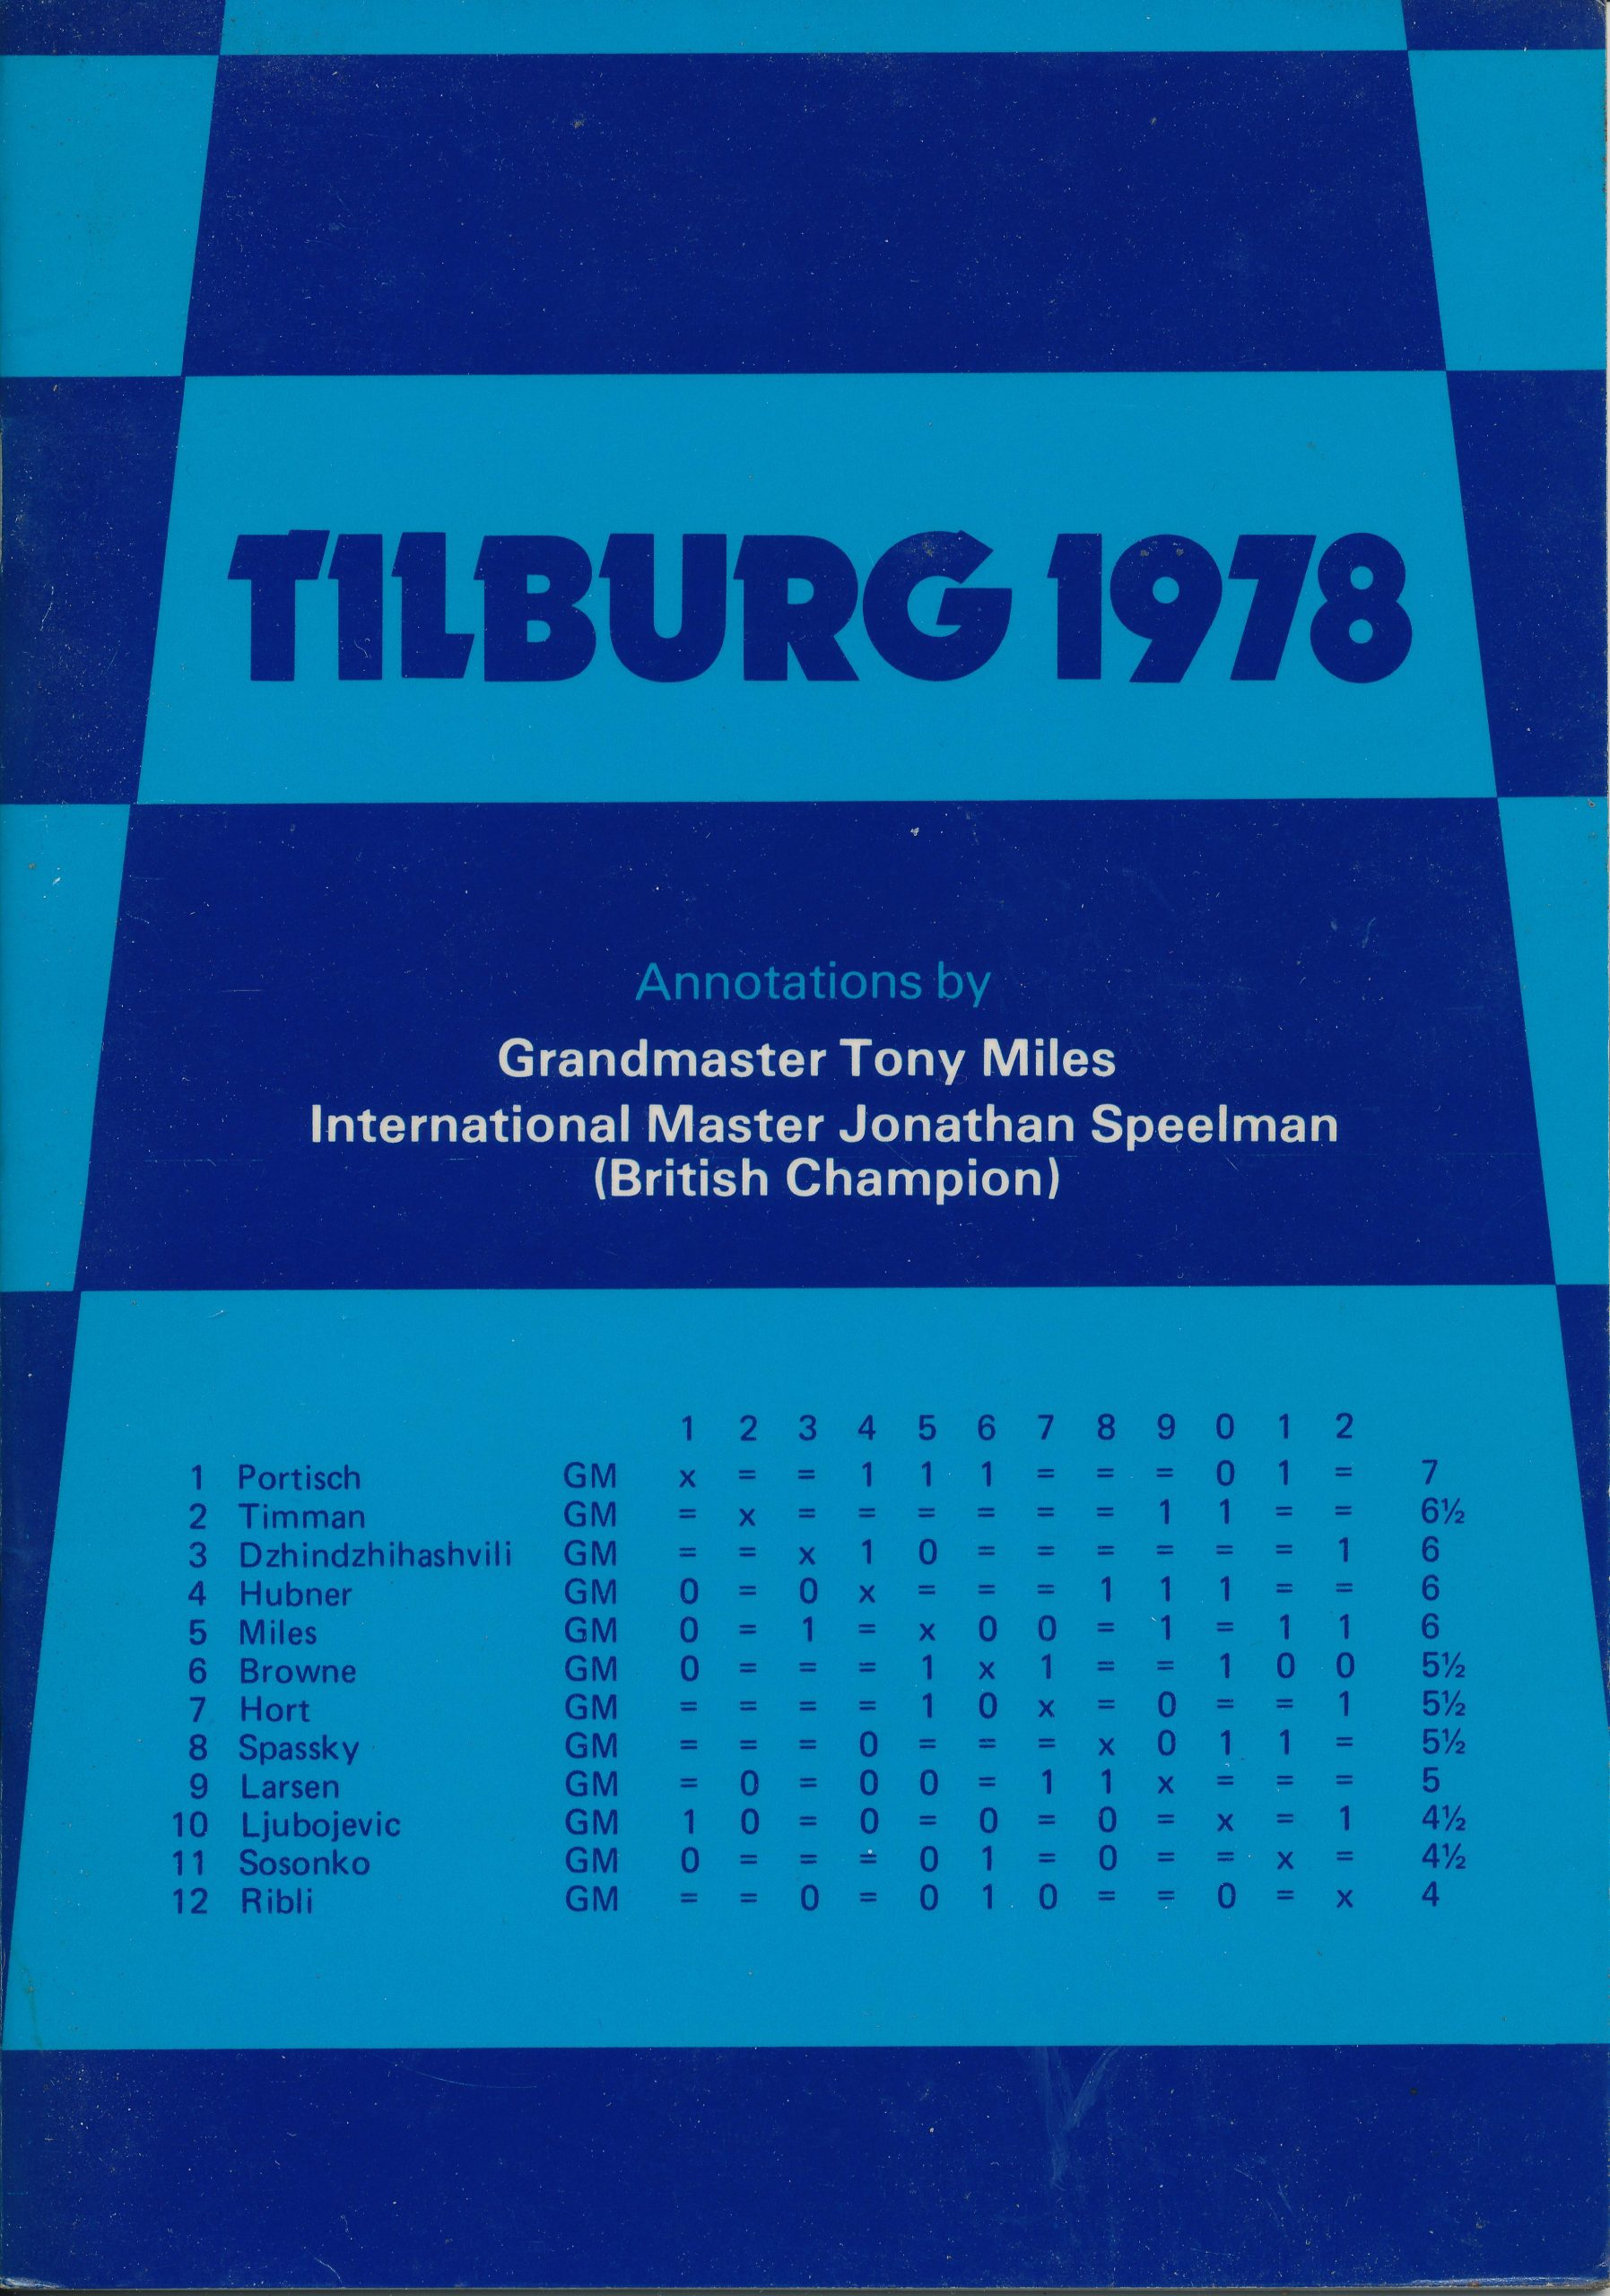 Tilburg 1978, Tony Miles & Jonathan Speelman, Master Chess Publications, 1978